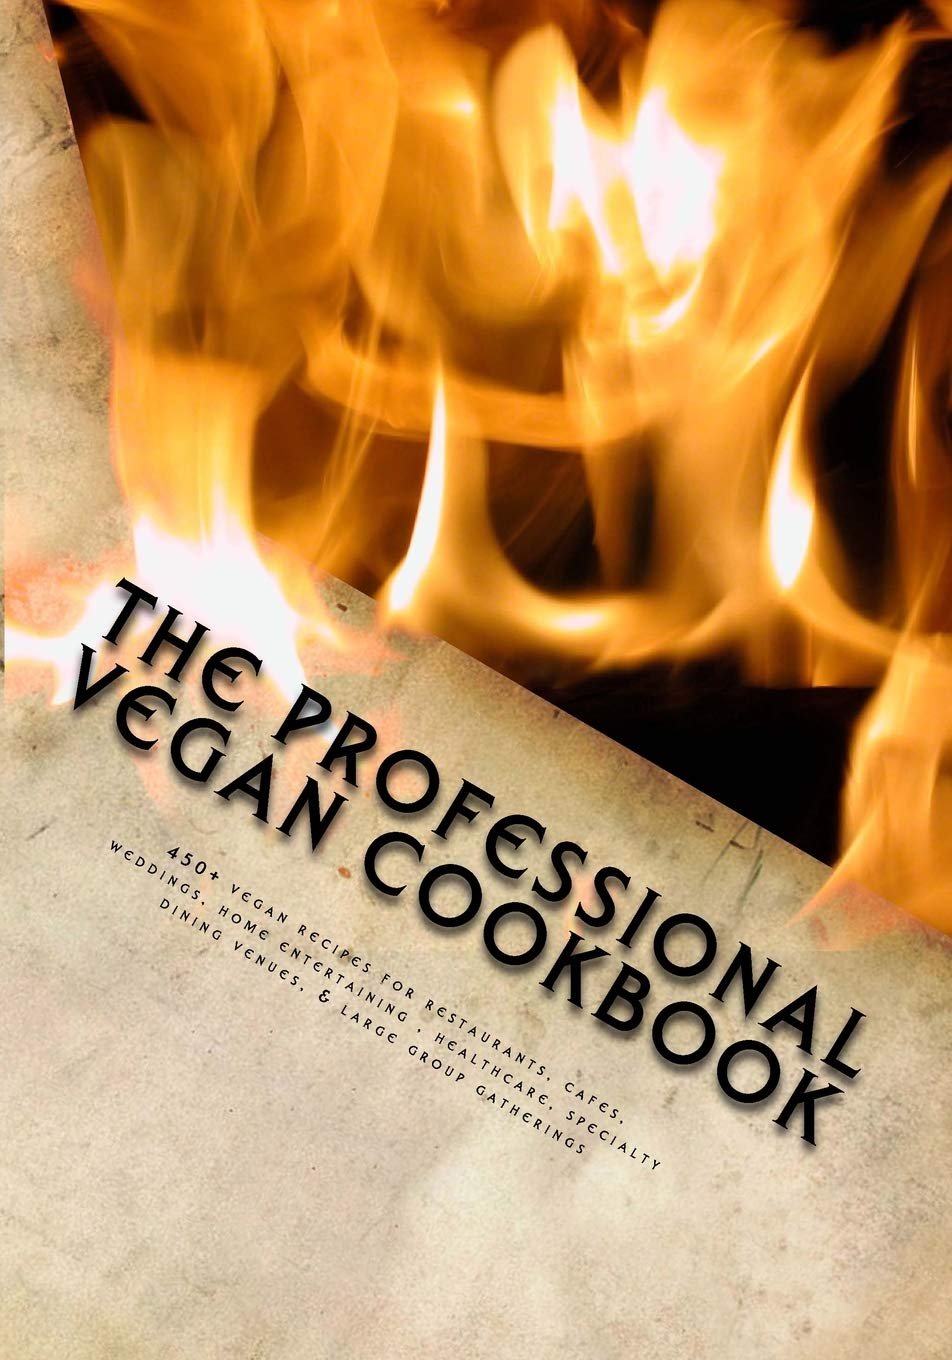 The Professional Vegan Cookbook Over 450 Vegan Recipes For Restaurants Cafes Weddings Home Entertaining Healthcare Specialty Dining Venues Large Group Gatherings Black And White Edition Mccarthy Brian P 9781500616151 Amazon Com Books